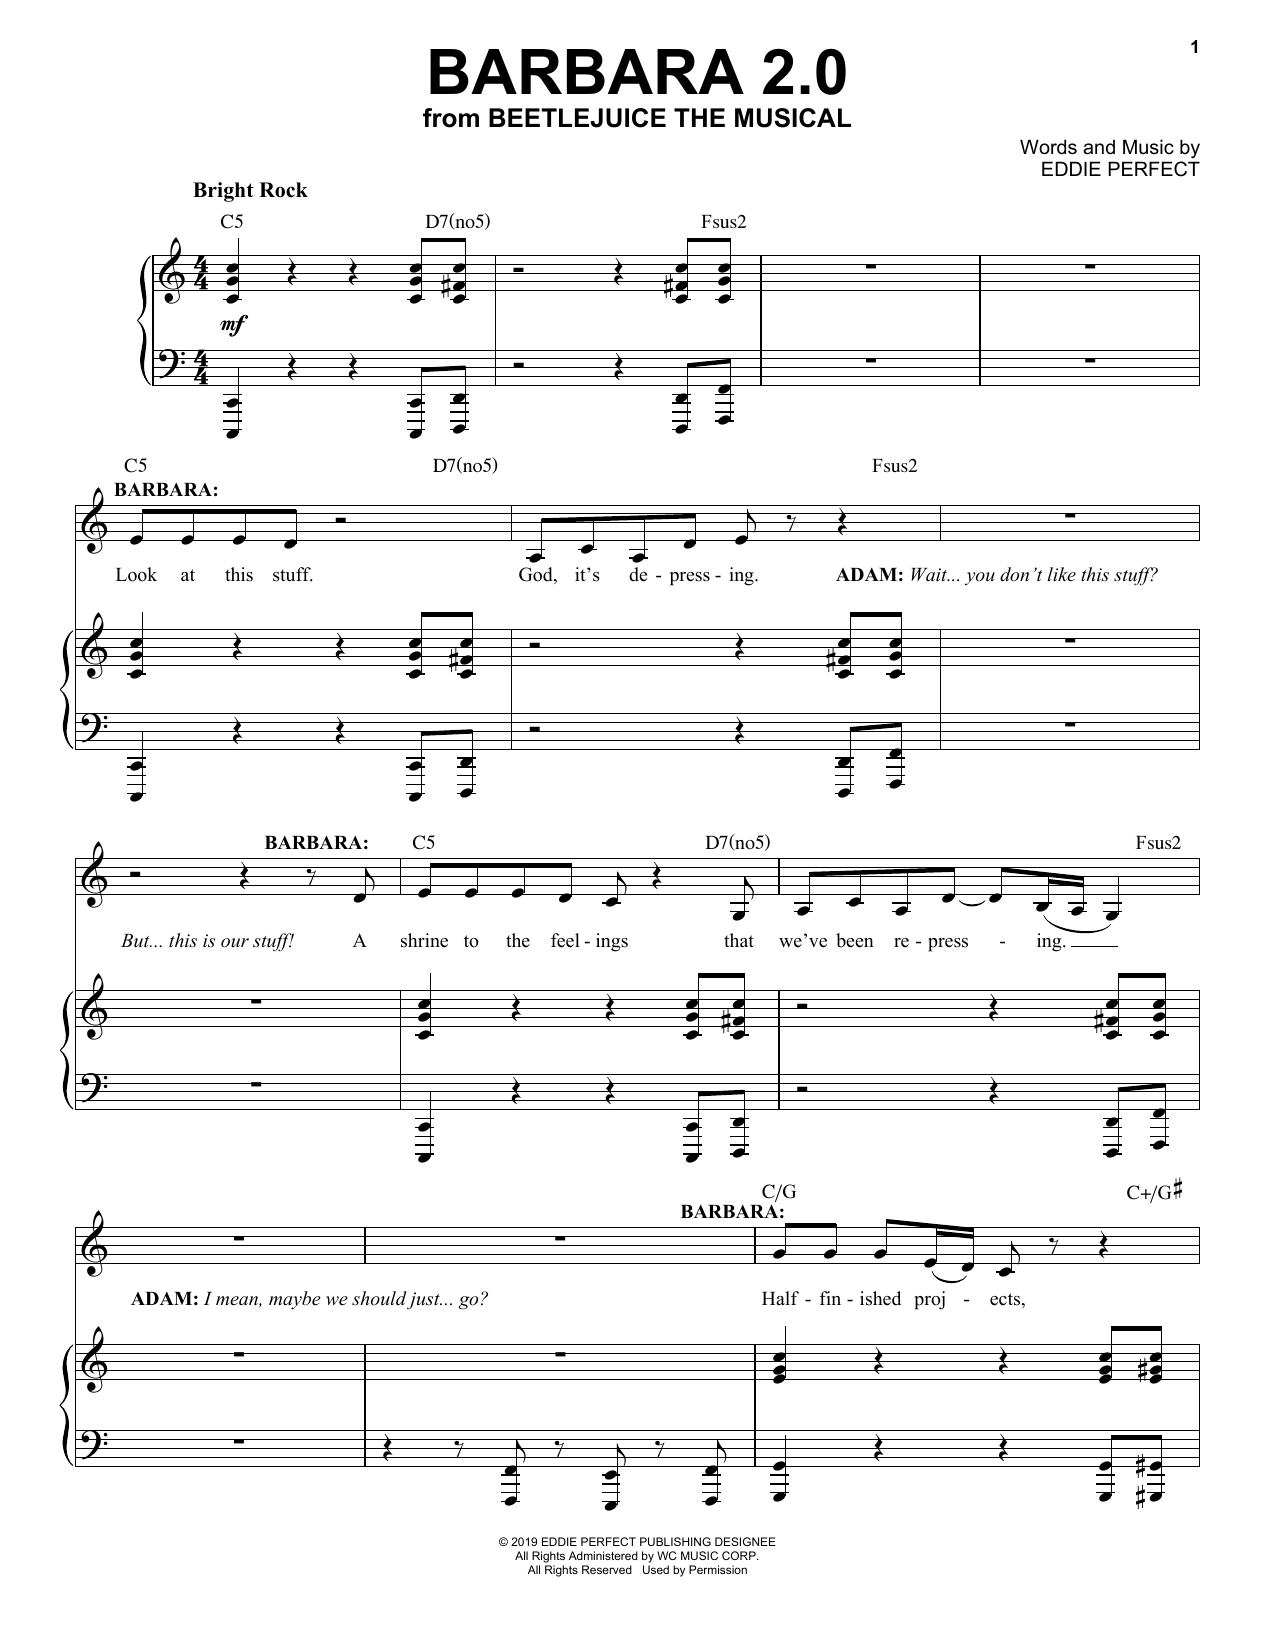 Eddie Perfect Barbara 2 0 From Beetlejuice The Musical Sheet Music Pdf Notes Chords Broadway Score Piano Vocal Download Printable Sku 428606